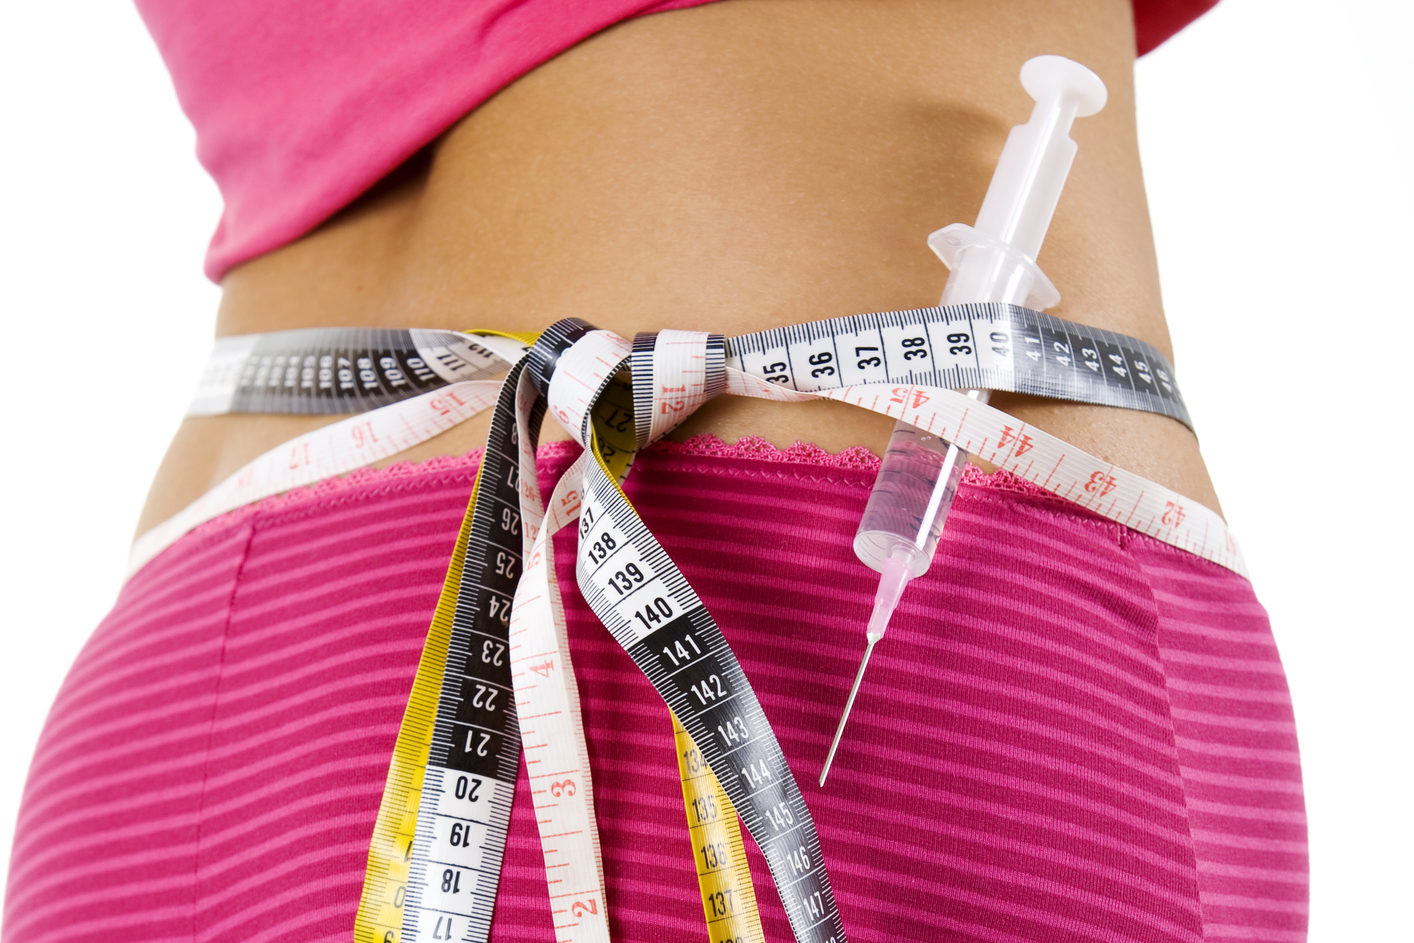 weight-loss fad